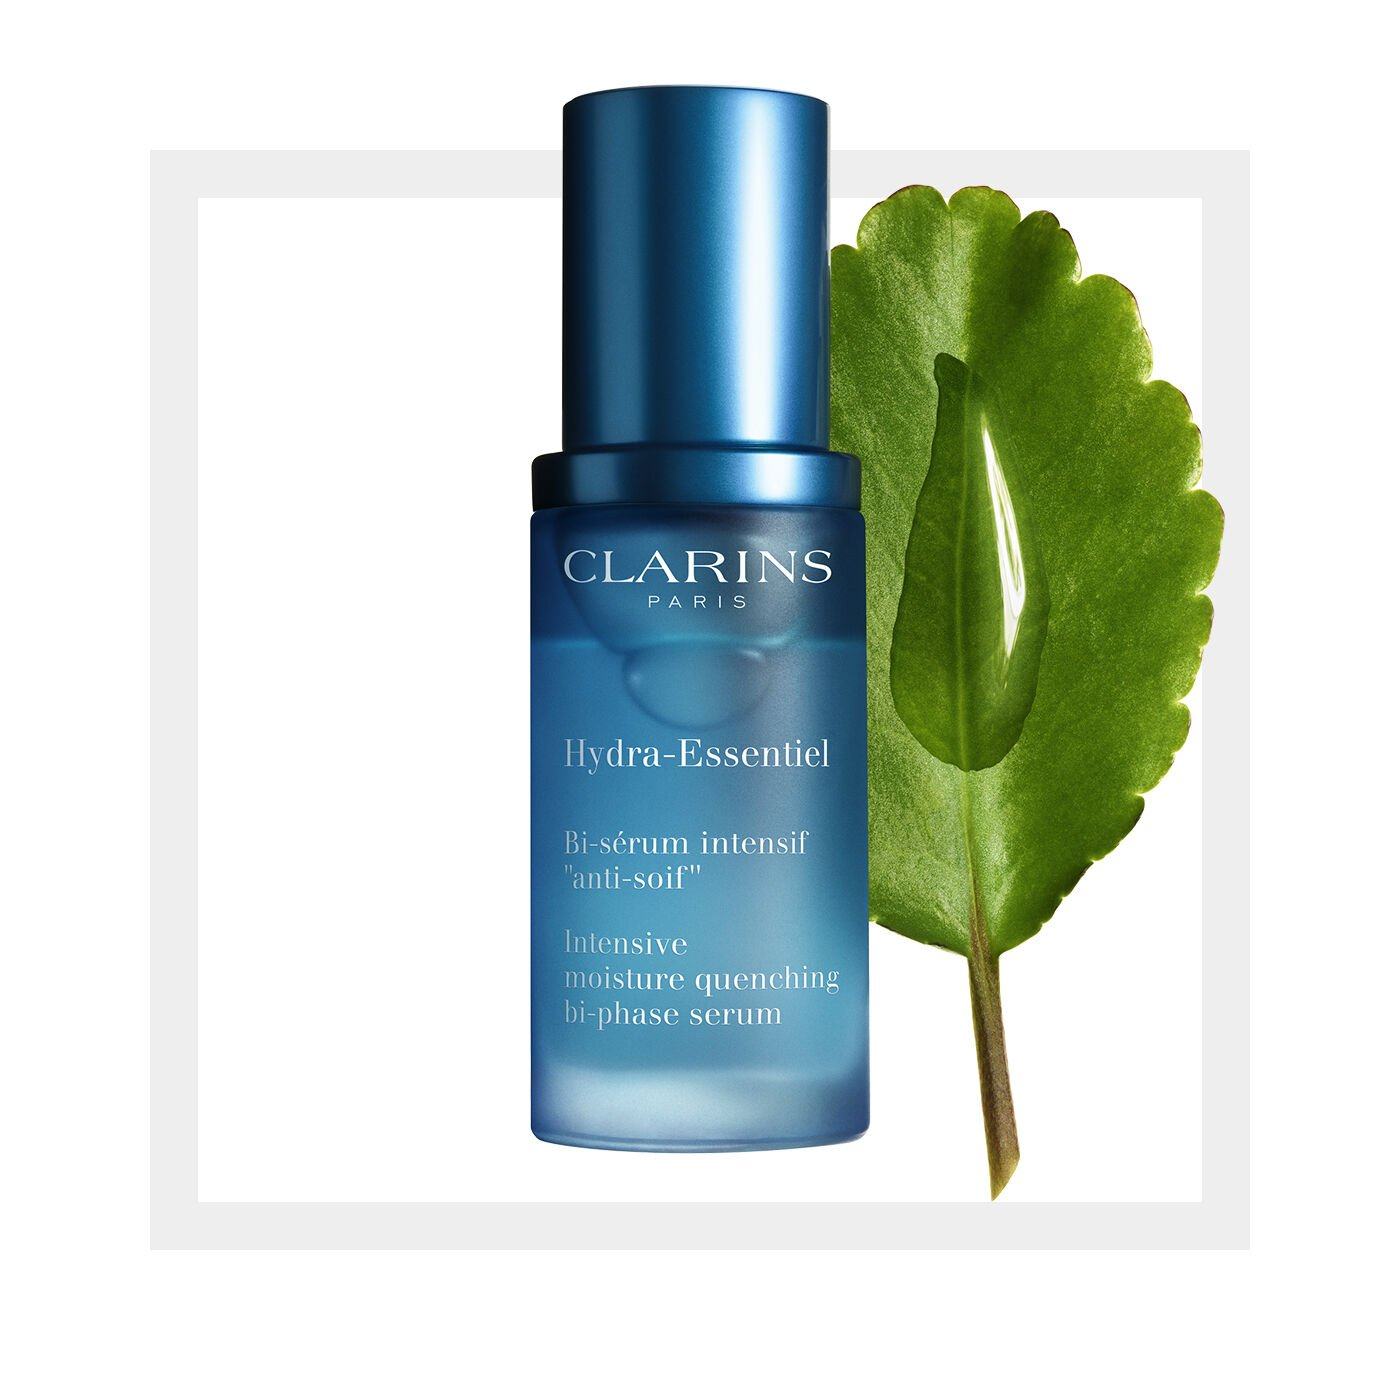 "Feuchtigkeitsserum Hydra-Essentiel Bi-Serum Intensif ""Anti-Soif"